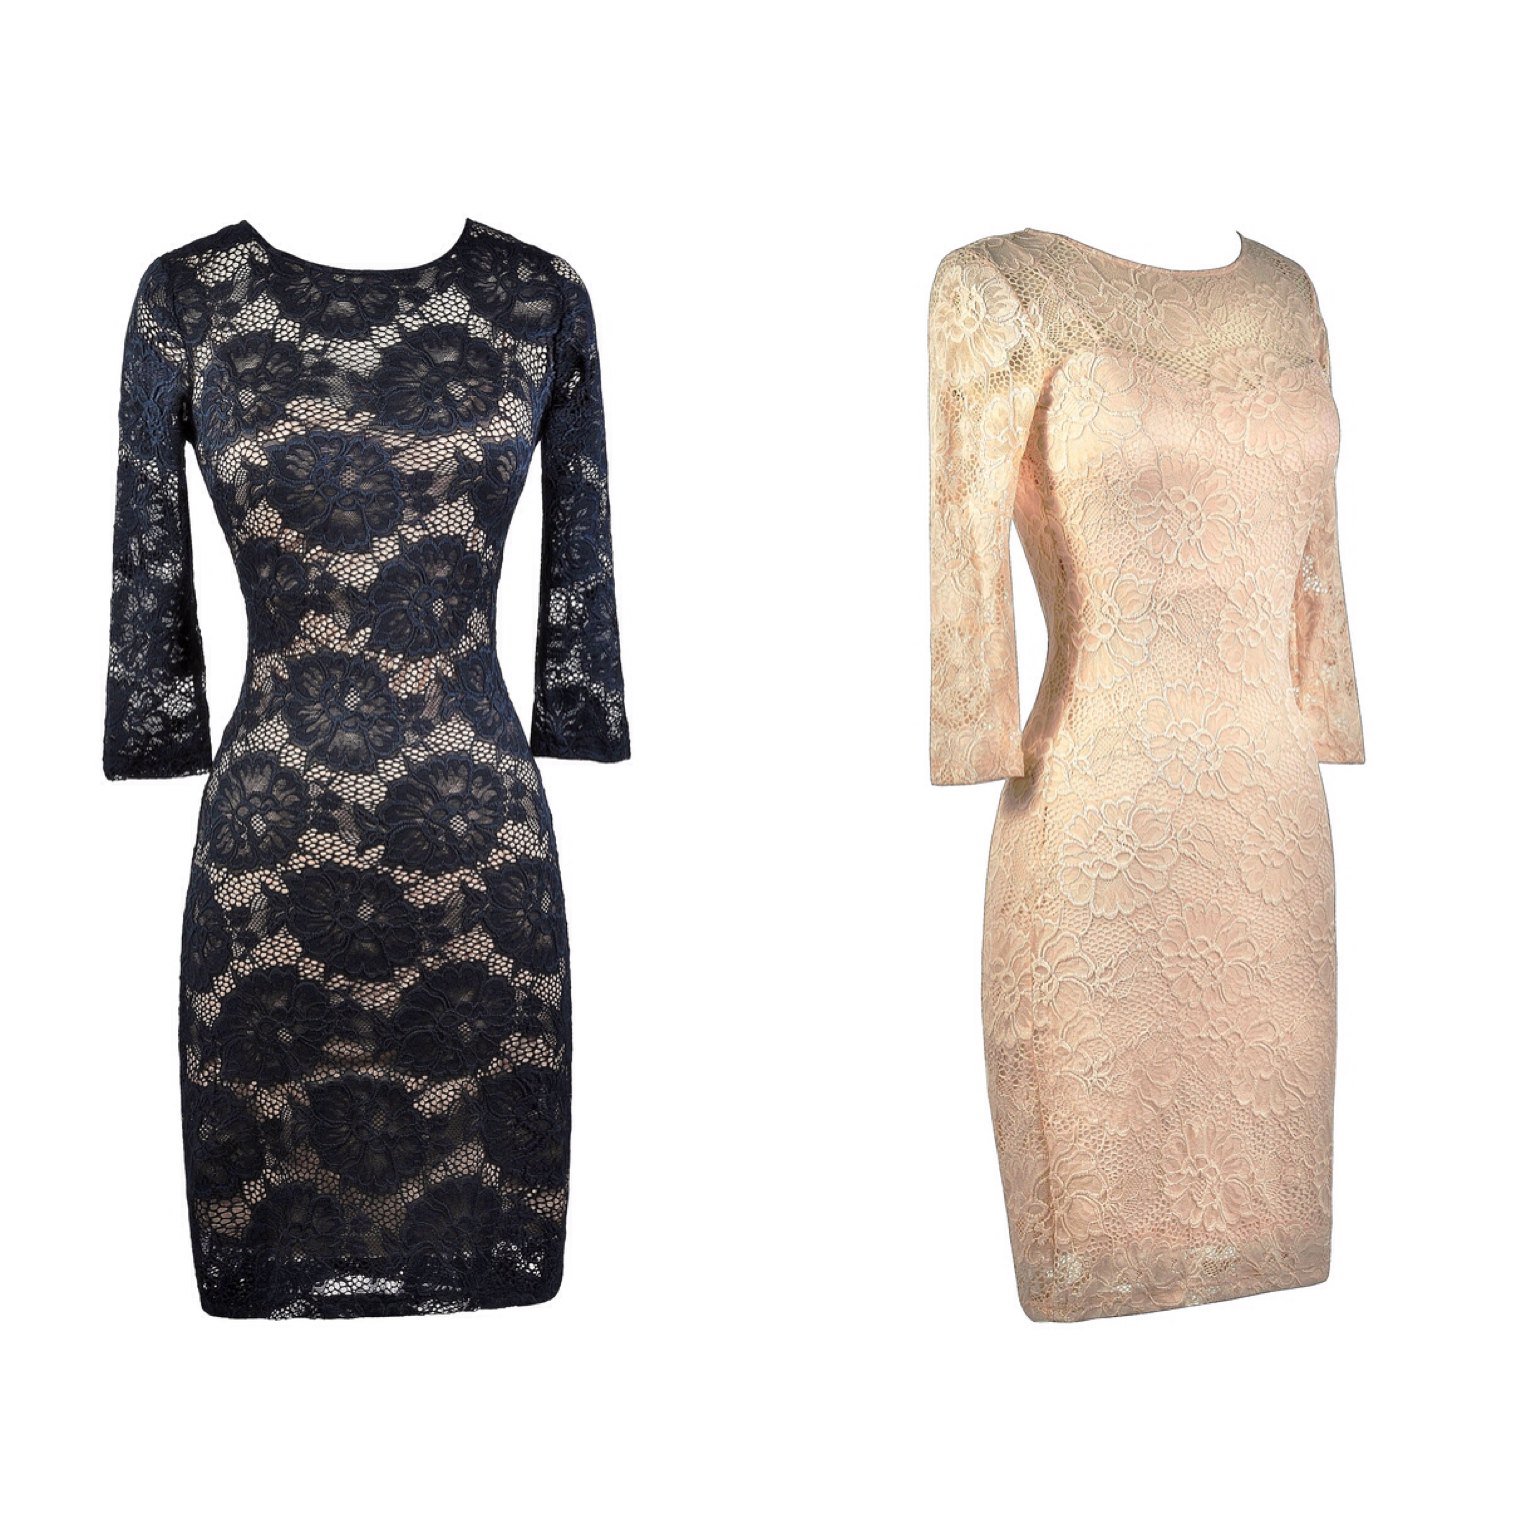 This lace dress has a cute fitted cut:  http://ss1.us/a/PfgqltV6  http://ss1.us/a/dr34Sjv5